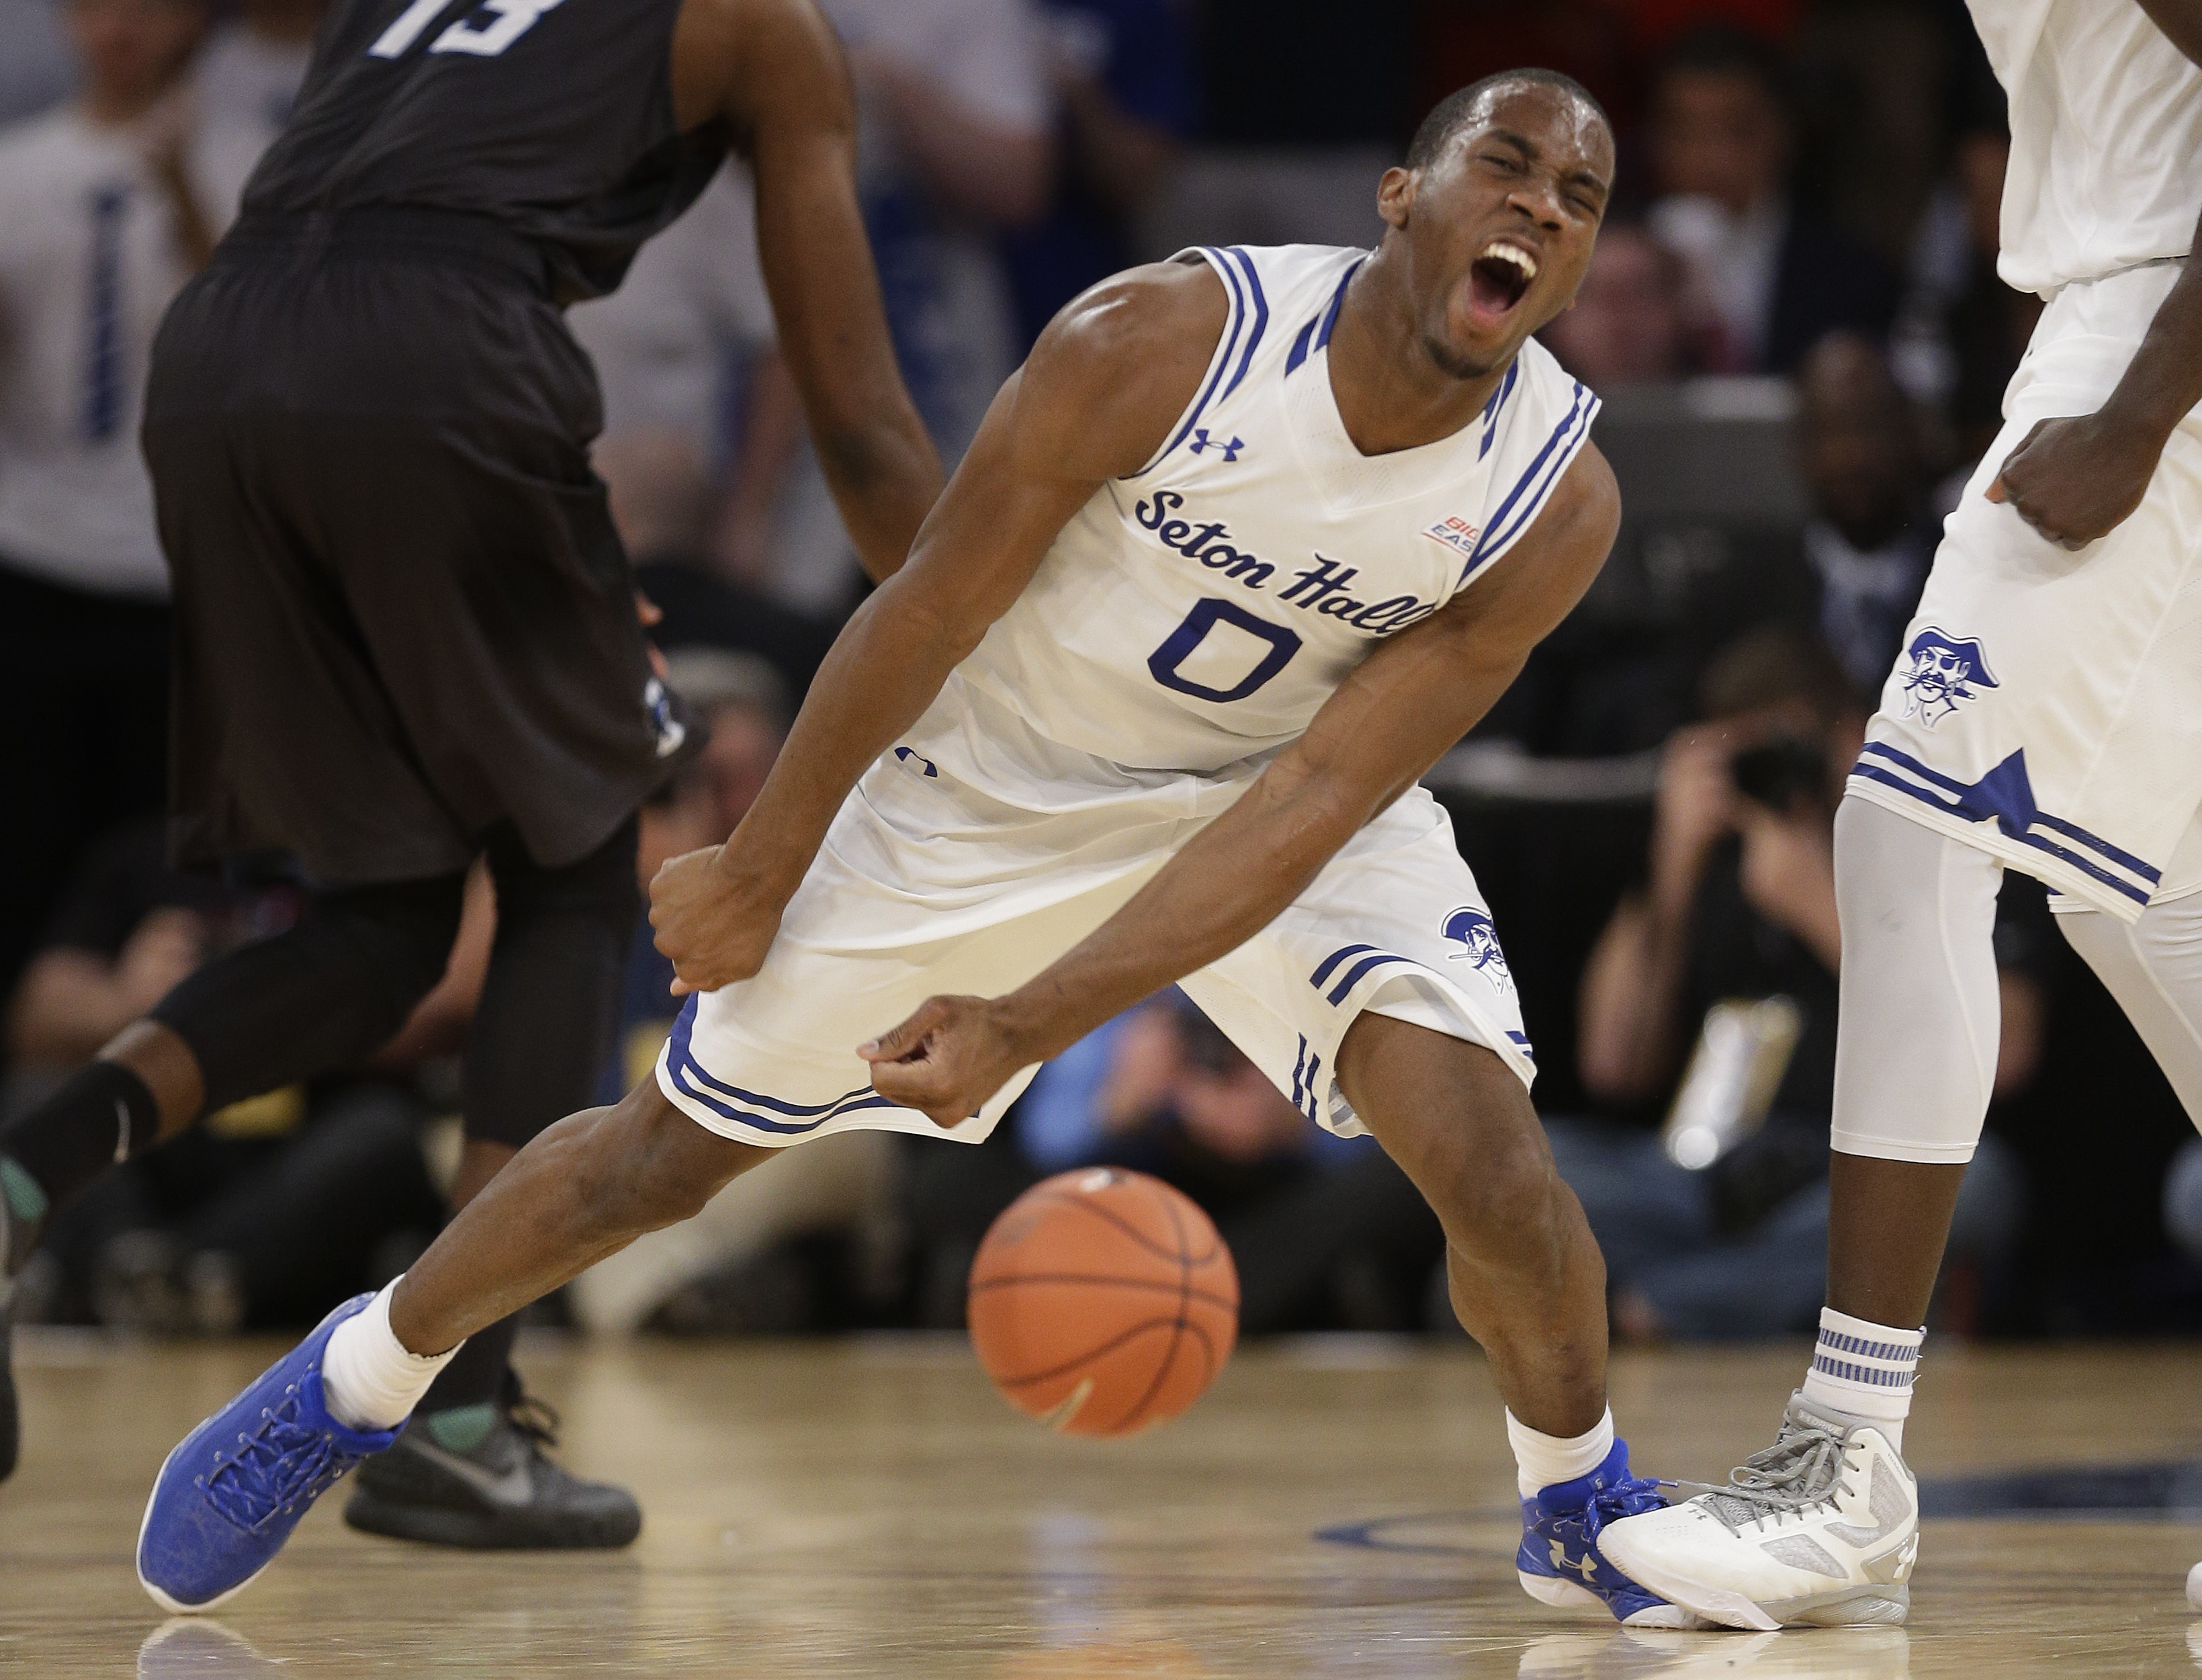 Seton Hall guard Khadeen Carrington (0) reacts after a turnover by Creighton in the first half of an NCAA college basketball game during the Big East men's tournament, Thursday, March 10, 2016, in New York. (AP Photo/Julie Jacobson)